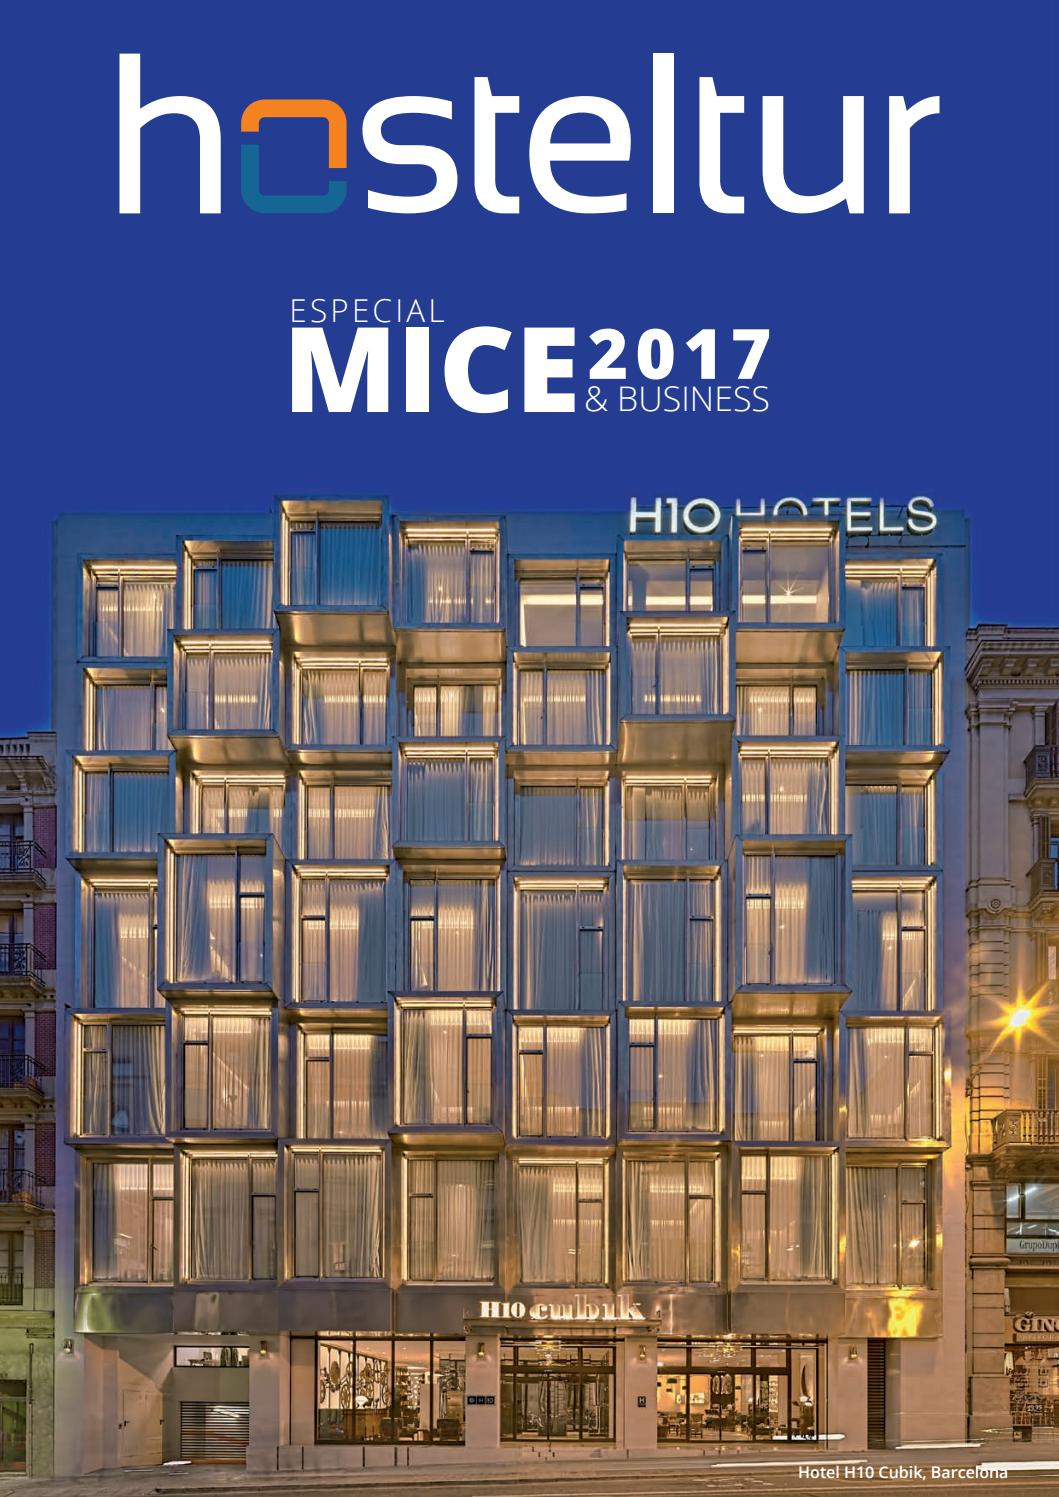 Hosteltur Especial MICE 2017 by hosteltur 2017 - issuu 0517bccf514e